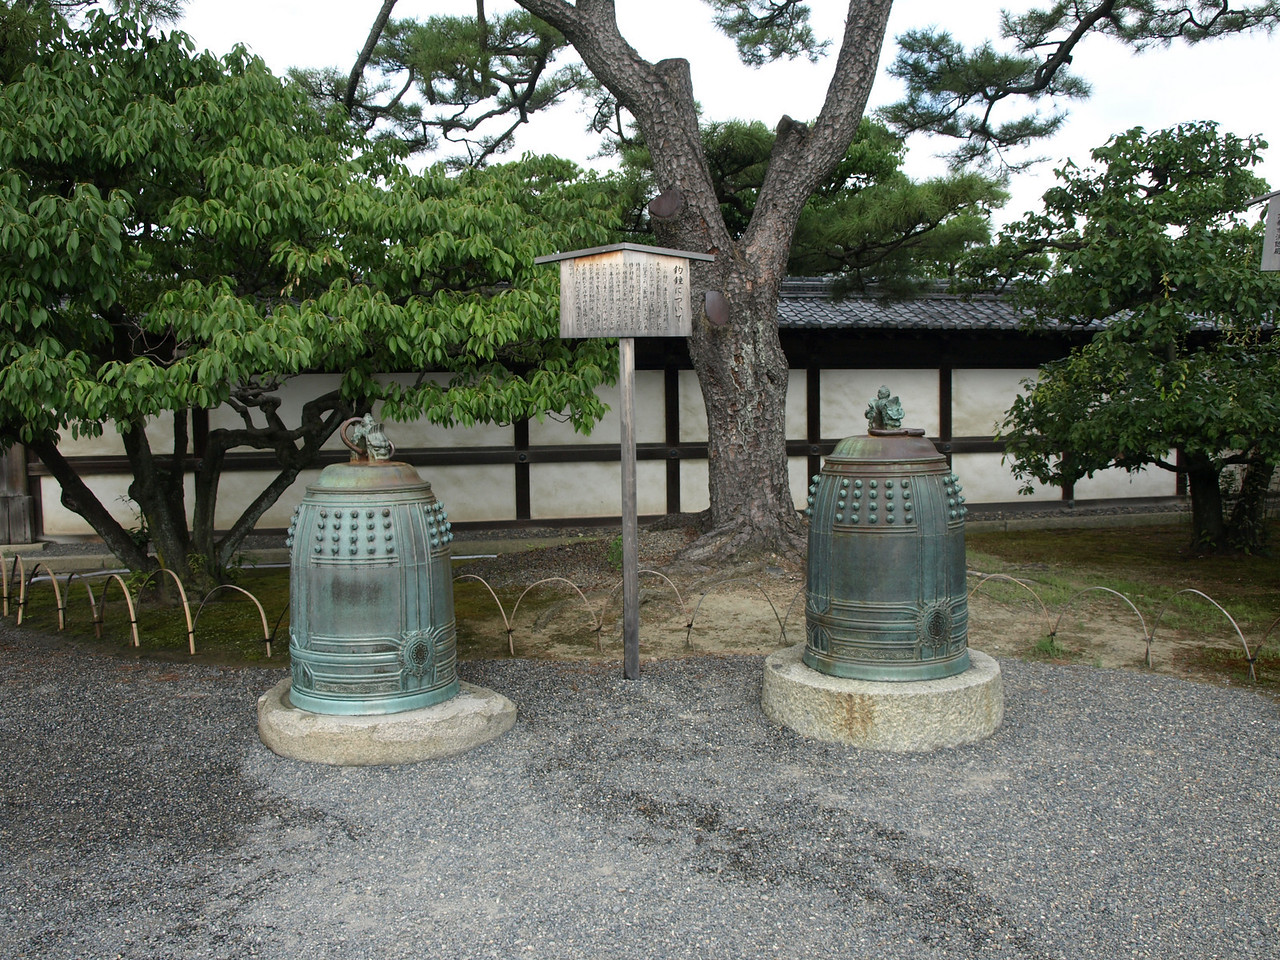 We pass two ancient bells as we head to the Ninomaru Gardens